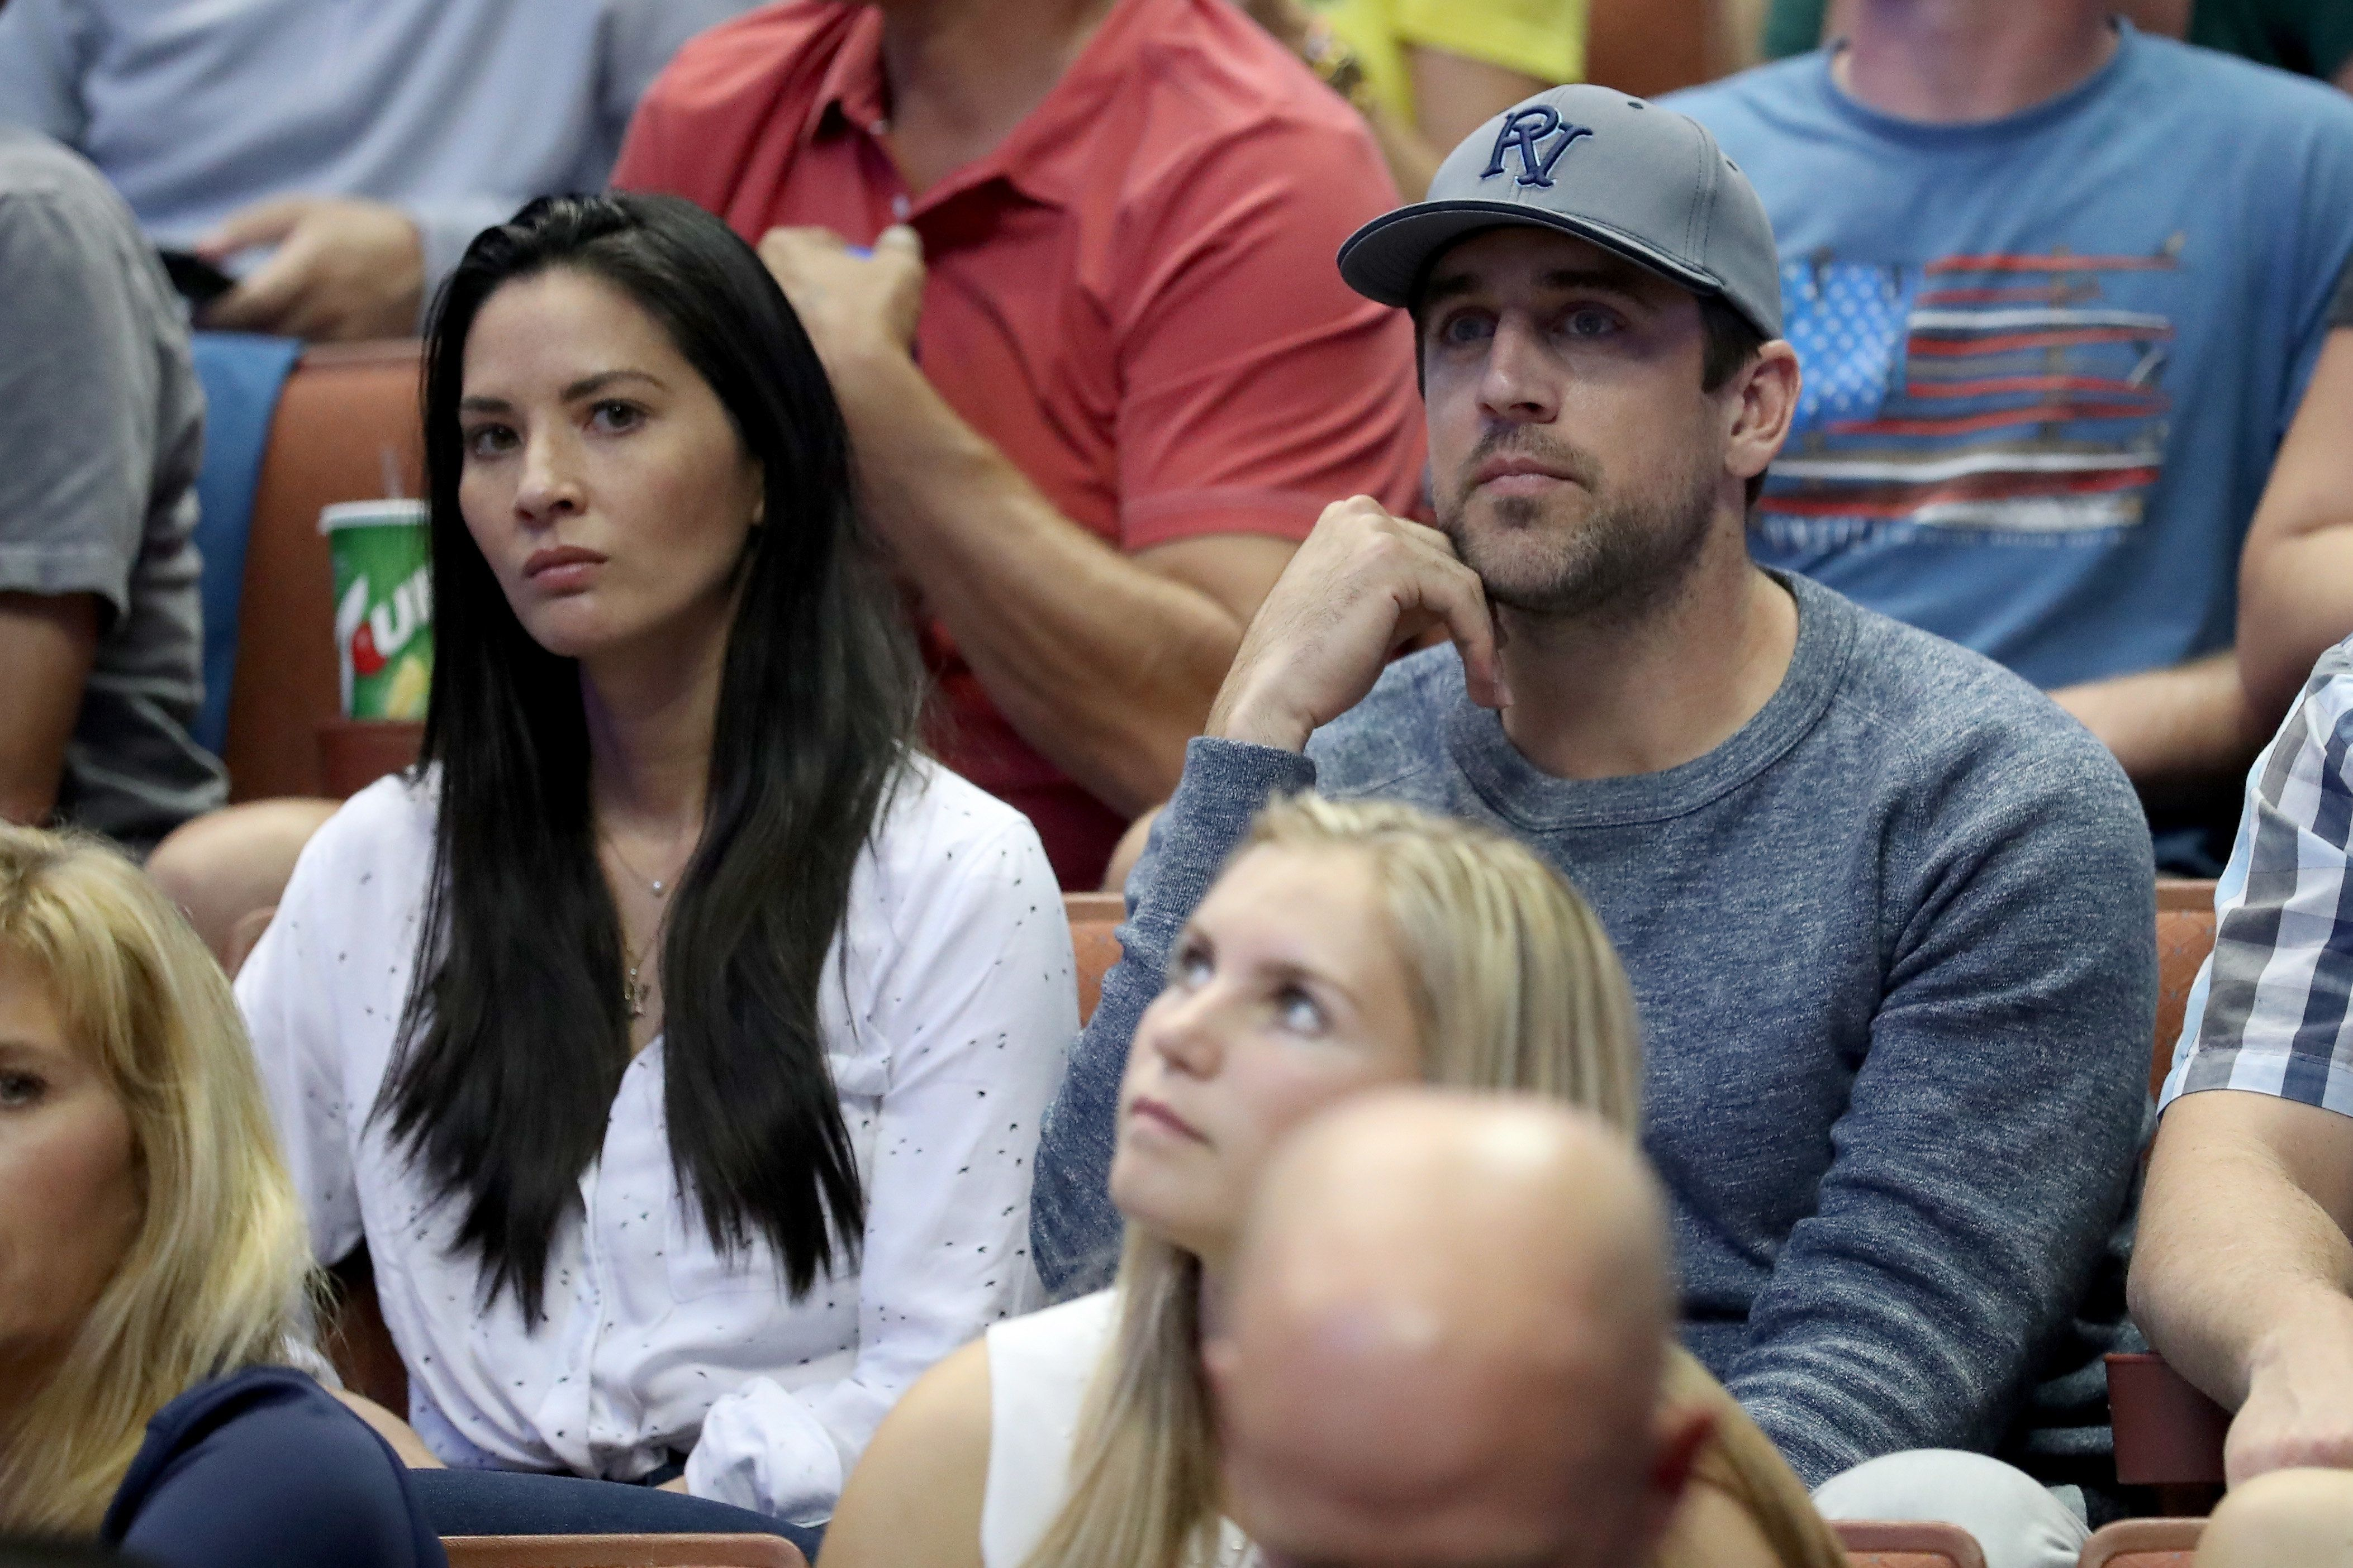 ANAHEIM, CA - MARCH 26:  Actress Olivia Munn and Aaron Rodgers of the Green Bay Packers watch the NCAA Men's Basketball Tournament West Regional Final at Honda Center on March 26, 2016 in Anaheim, California.  (Photo by Sean M. Haffey/Getty Images)